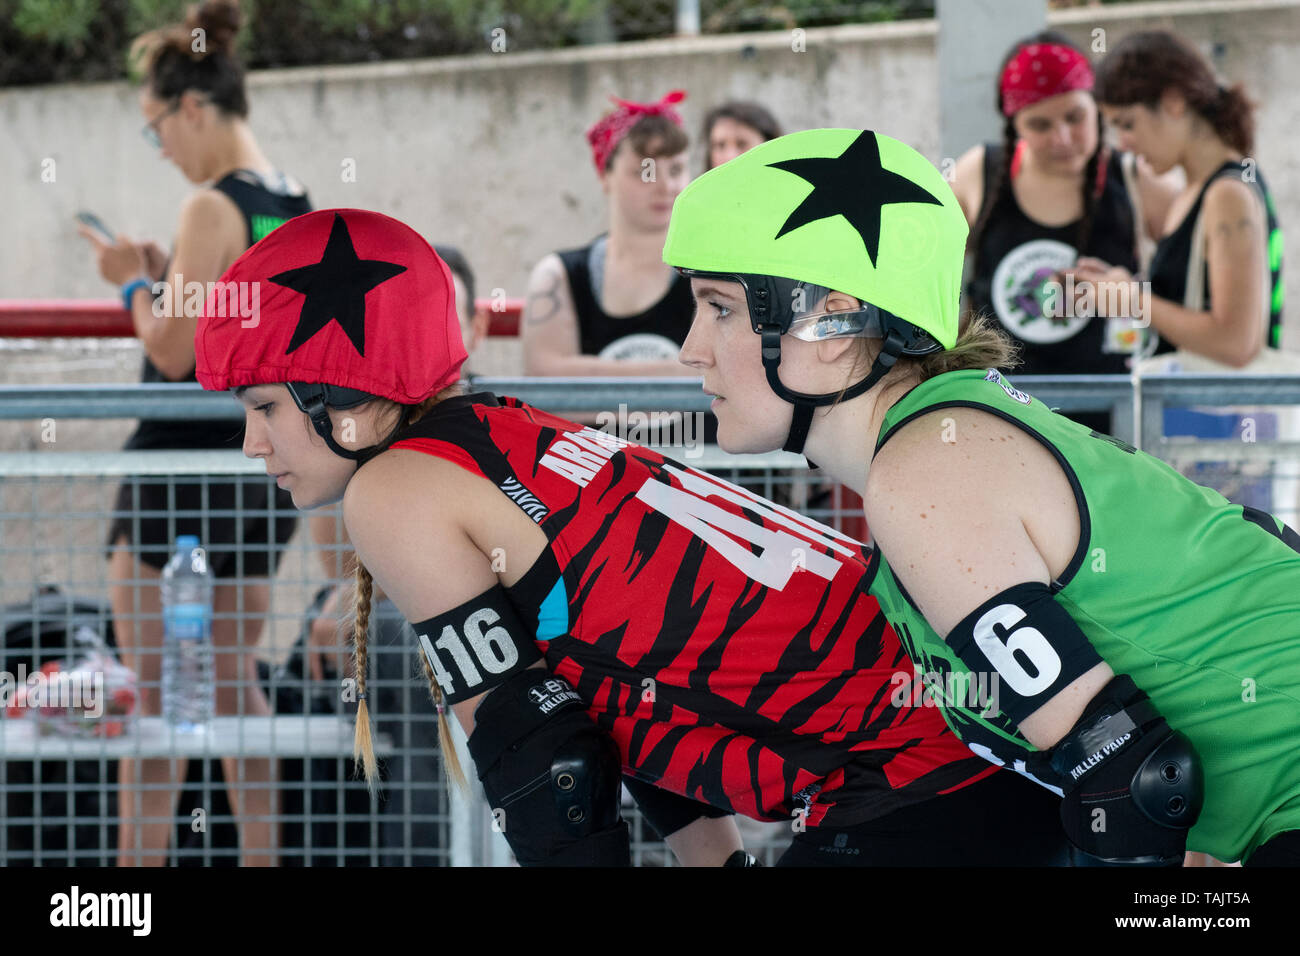 Madrid, Spain. 25th May, 2019. Jammers of Roller Derby Madrid A (red) and Gothenburg Roller Derby (green) just before a jam. - Stock Image